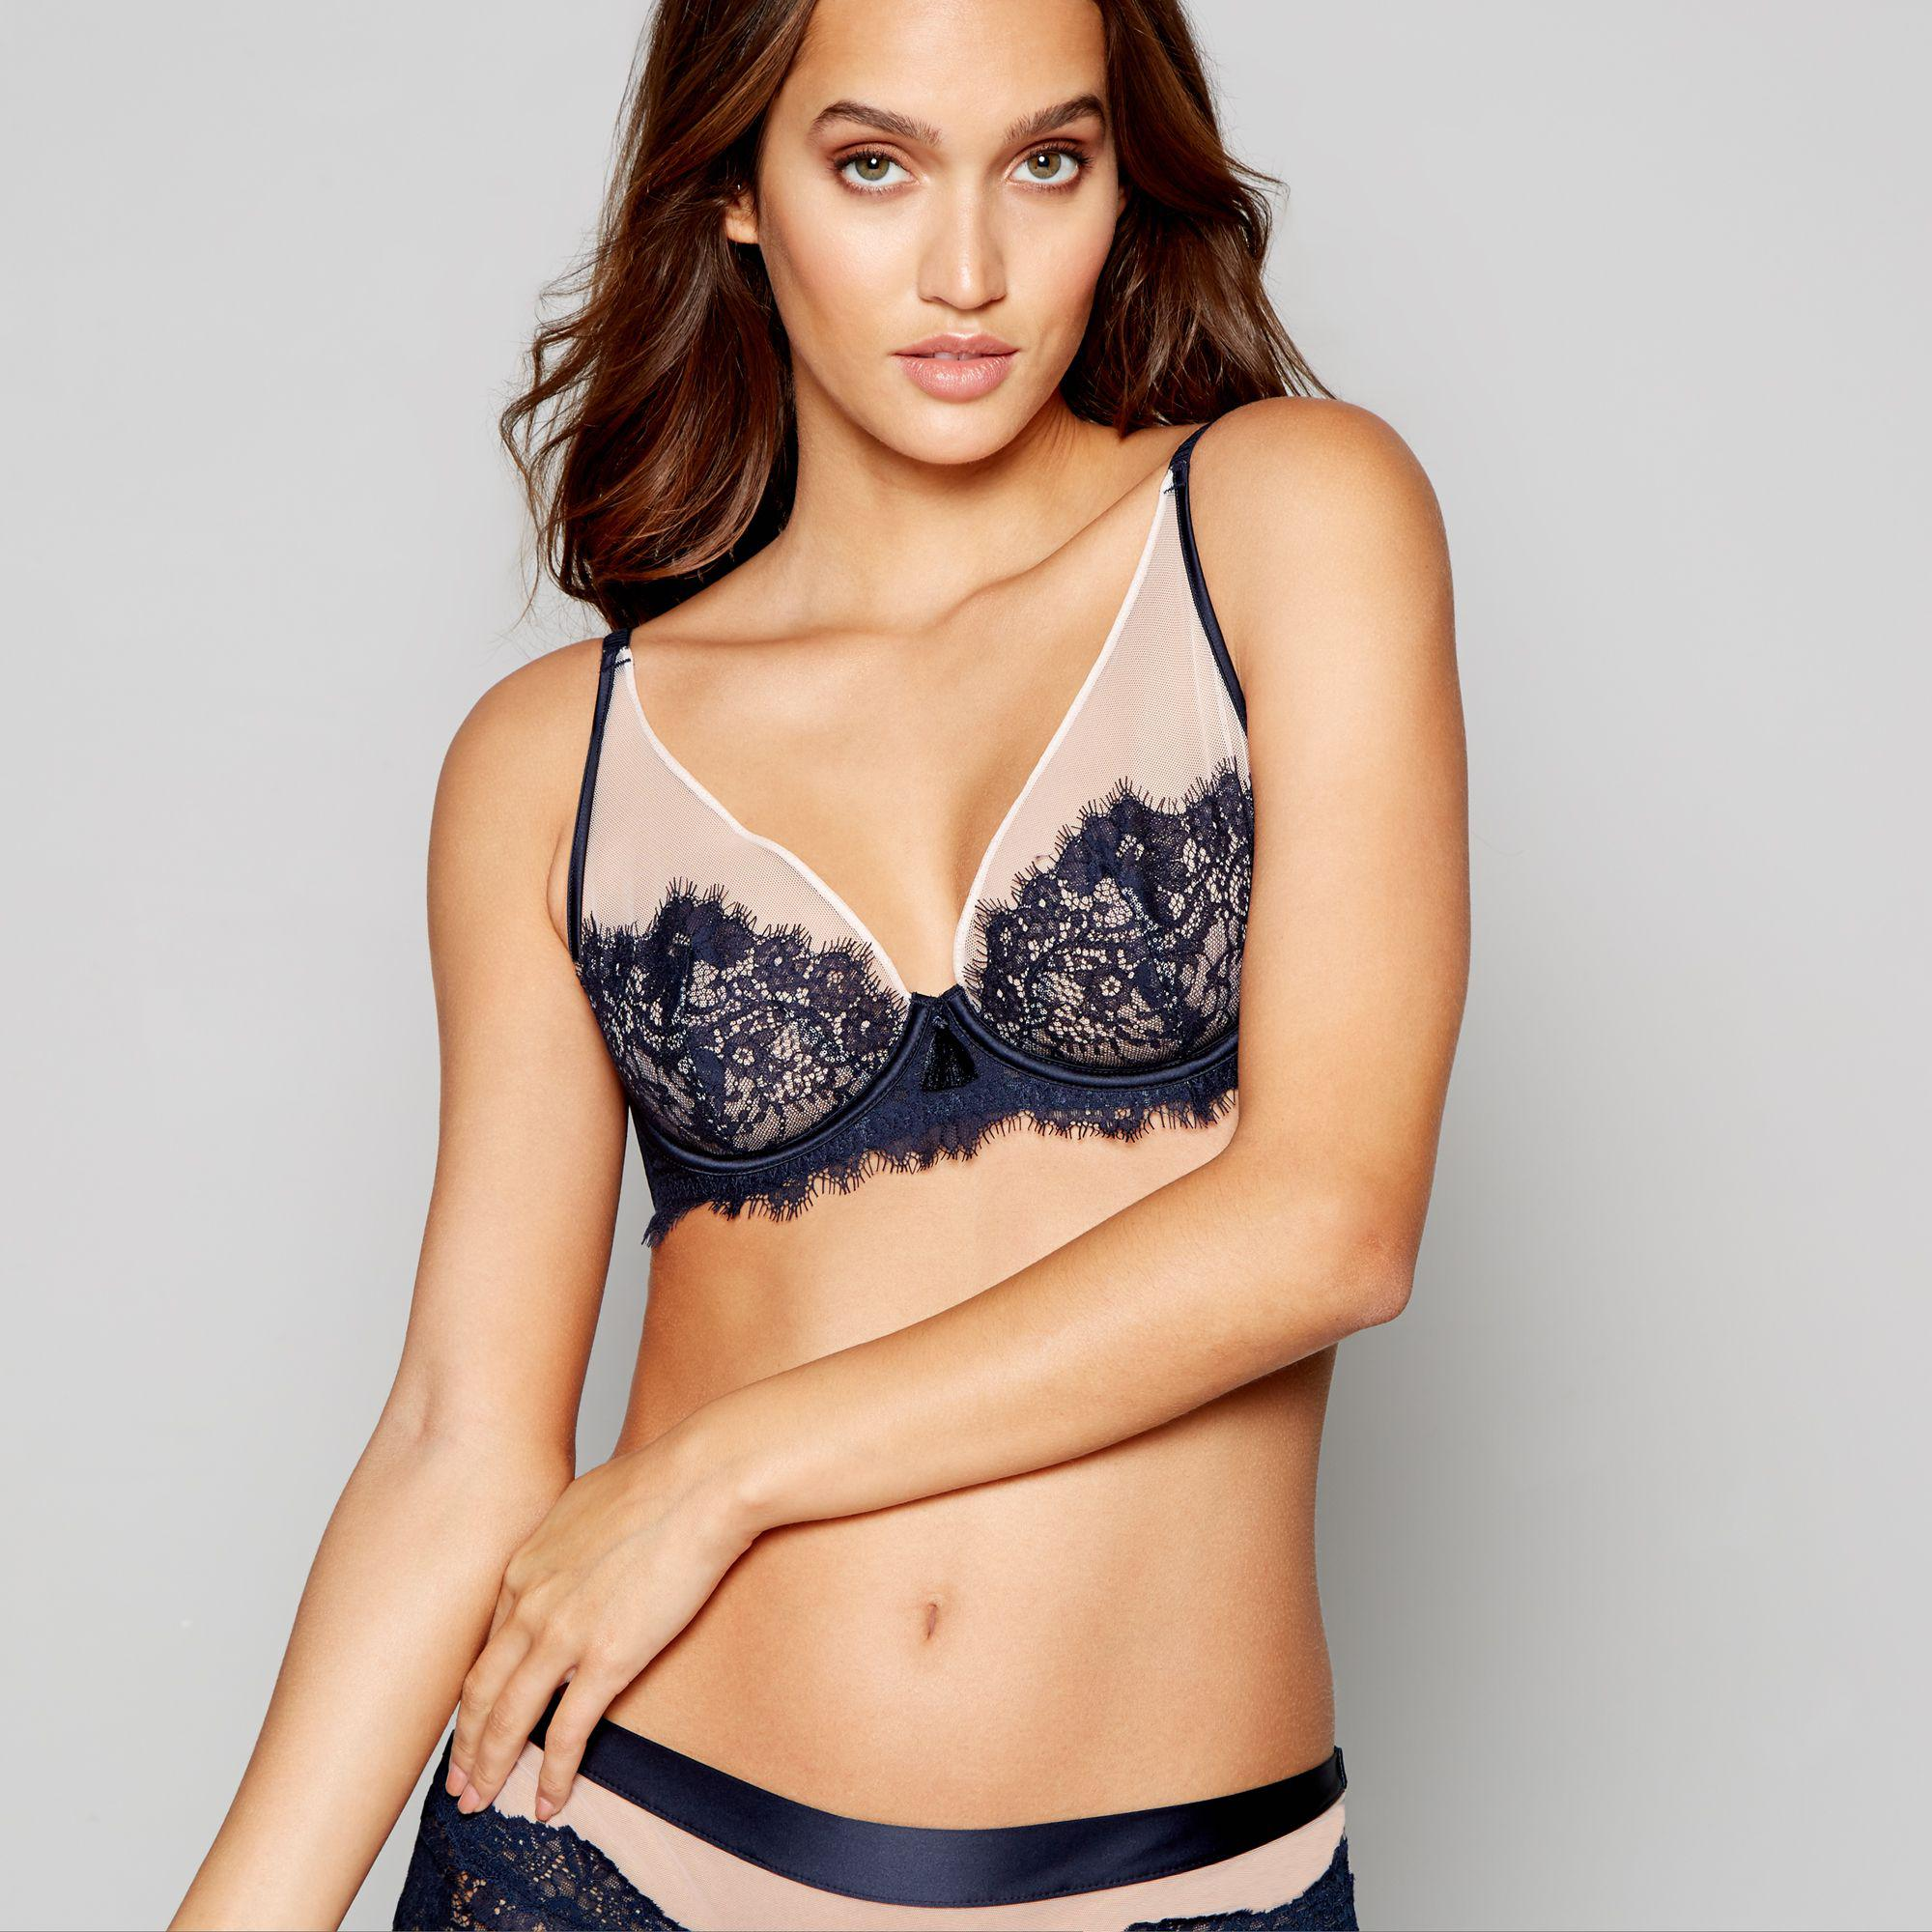 553f2ea5f05f9a Ted Baker - Blue Navy Lace Mesh Underwired Non-padded Bra - Lyst. View  fullscreen